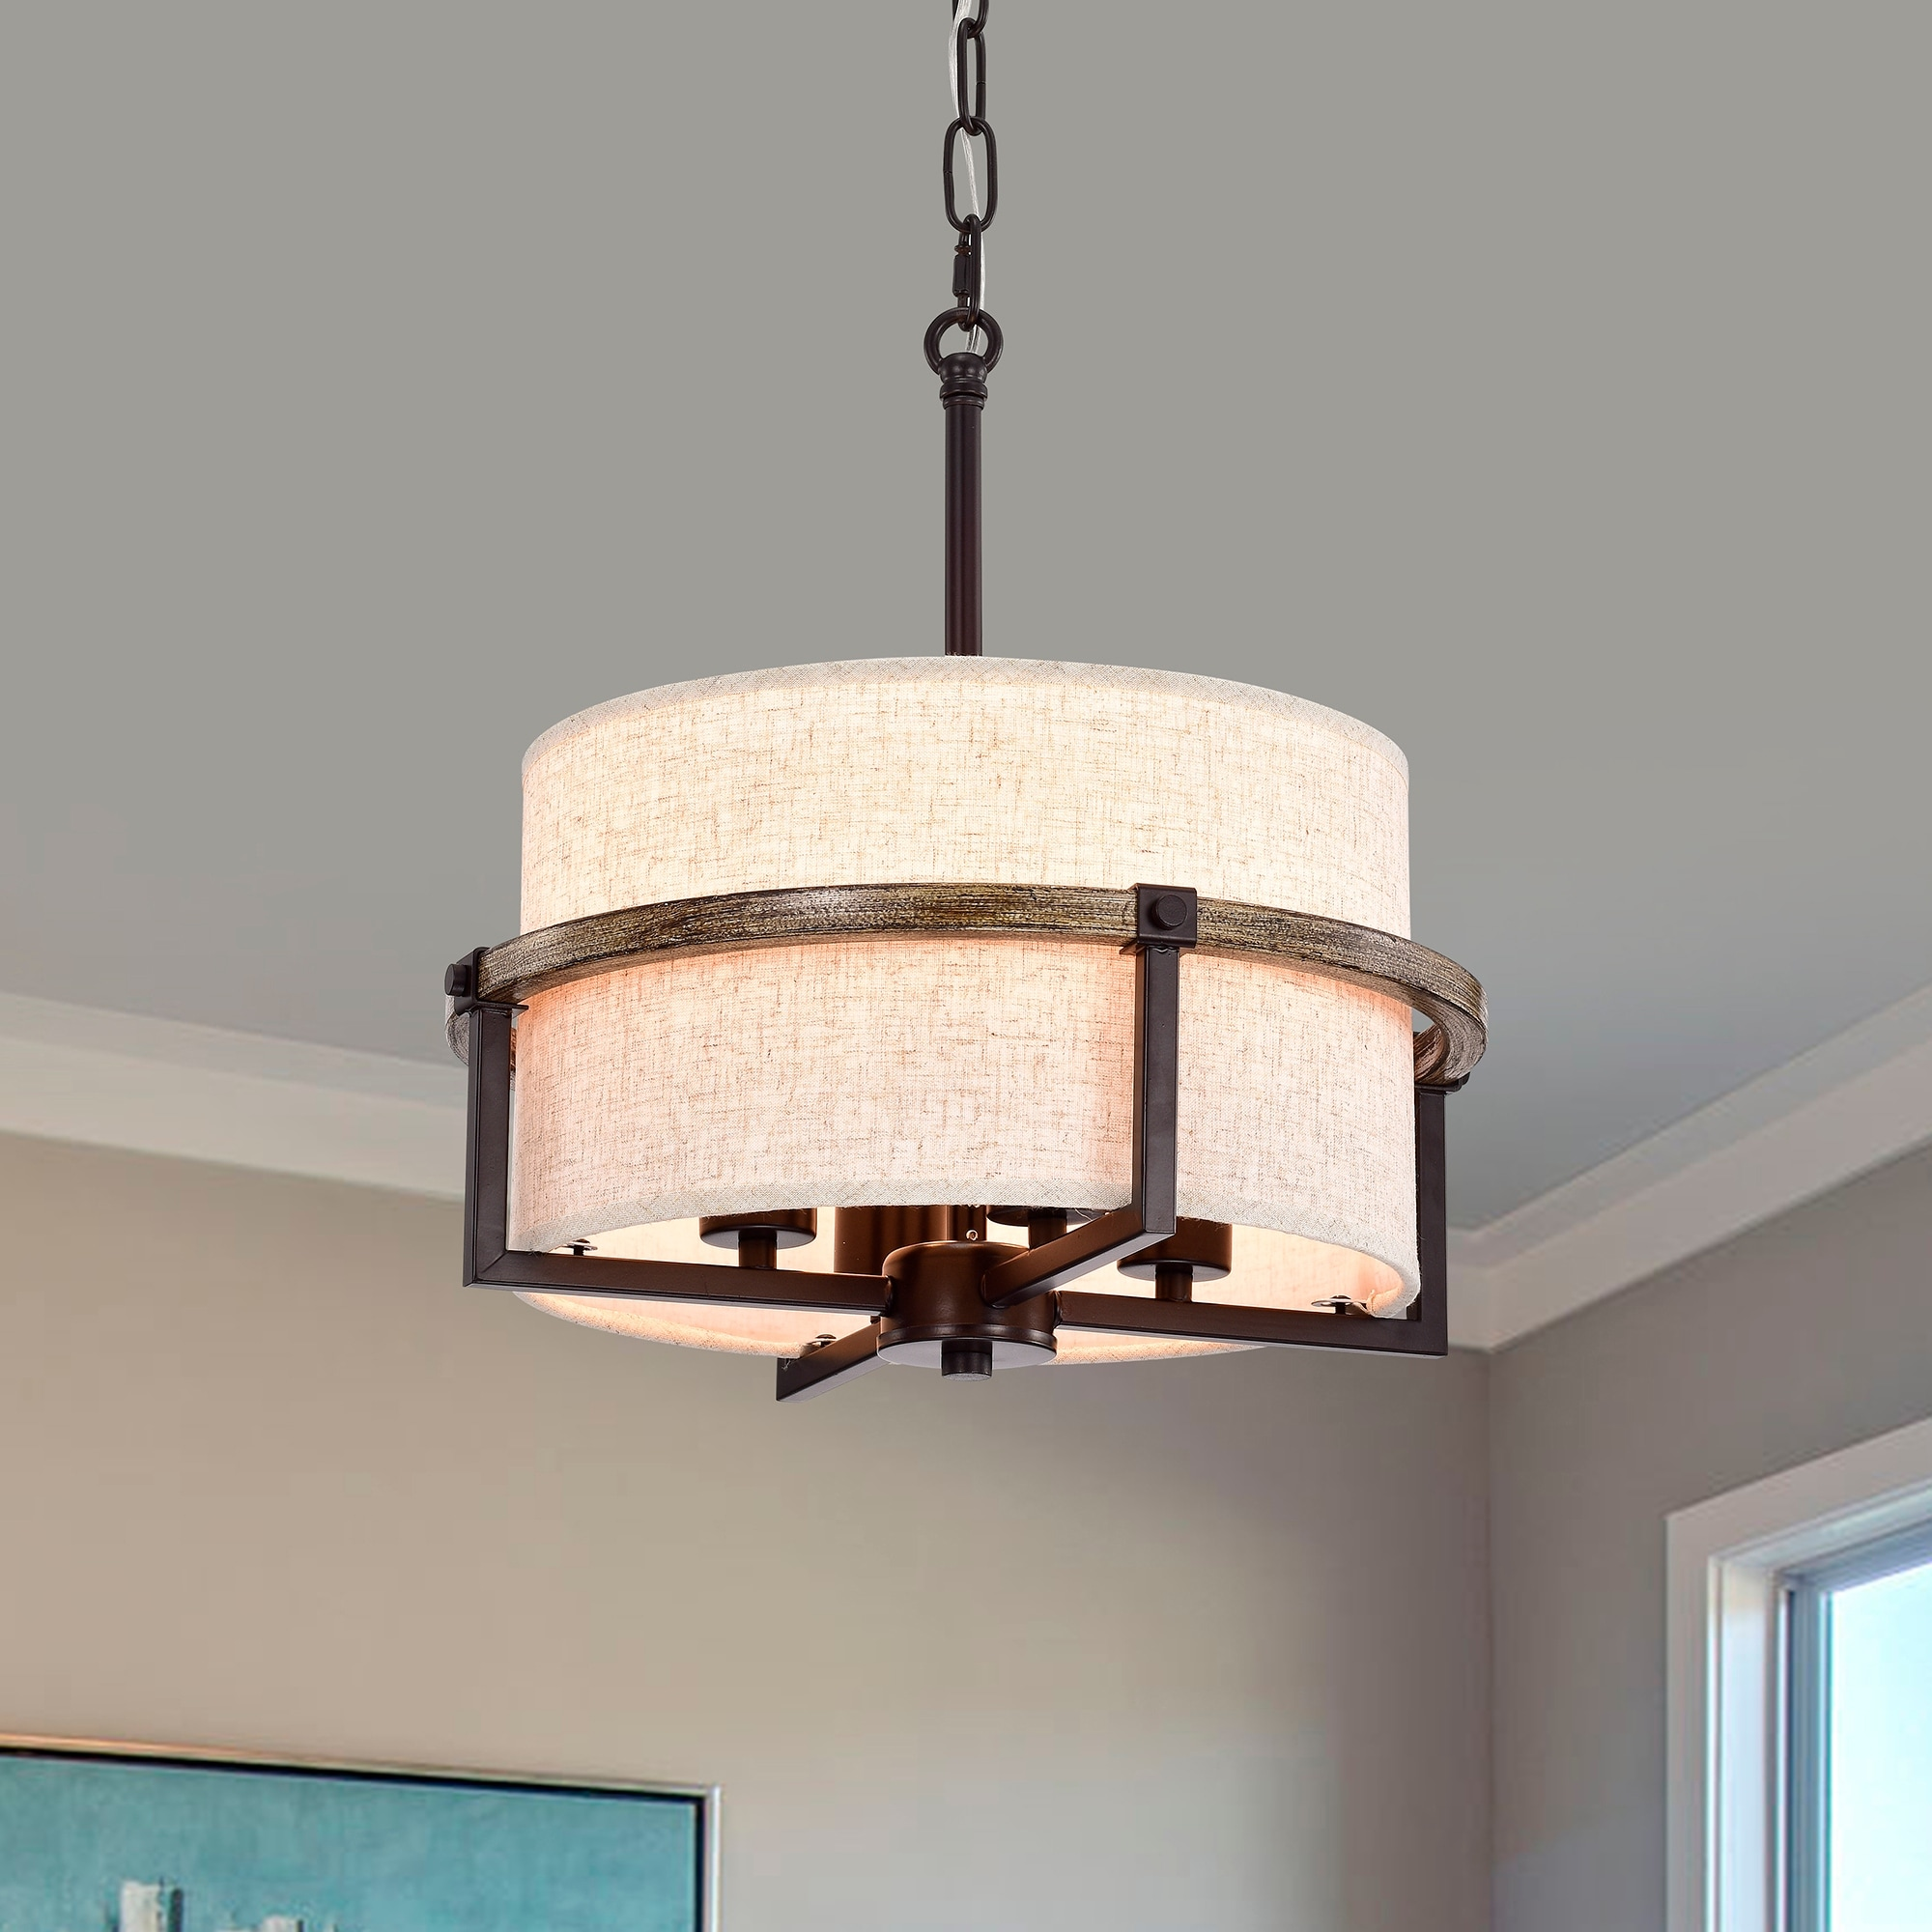 Image of: Shop Black Friday Deals On Natty Oil Rubbed Bronze 4 Light Metal Fabric Drum Shade Chandelier Overstock 31984639